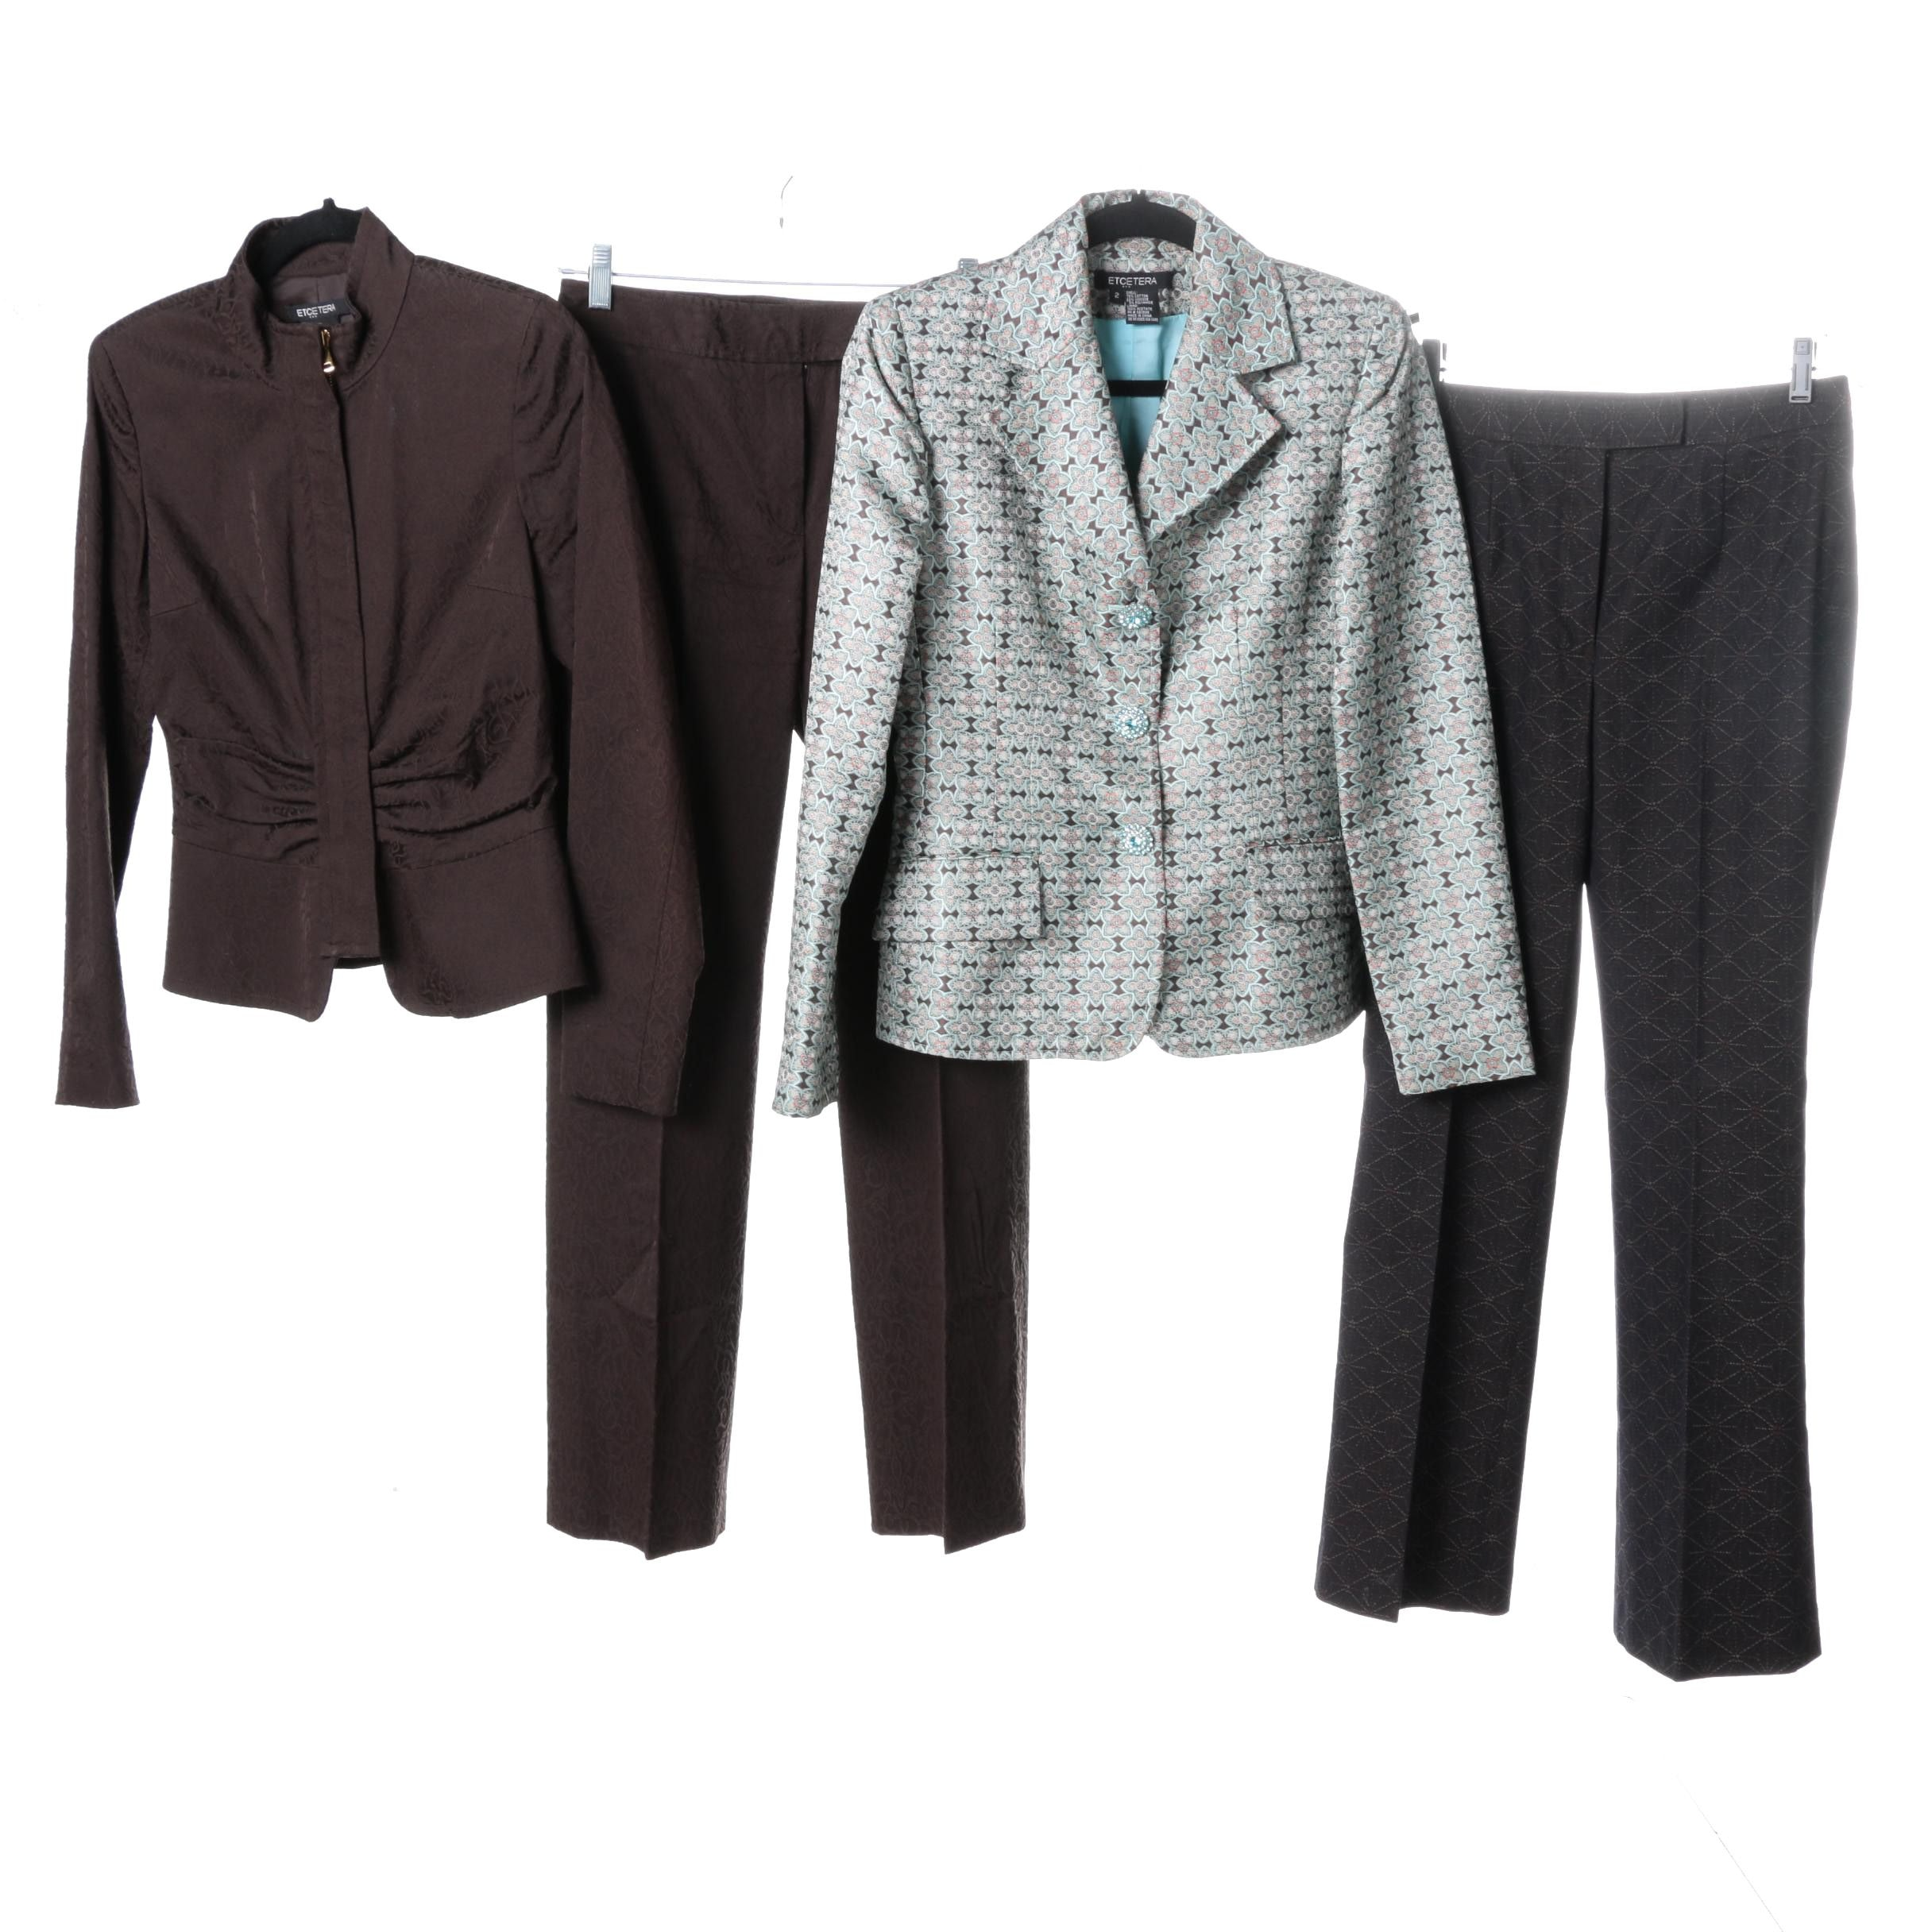 Etcetera Pant Suit and Separates